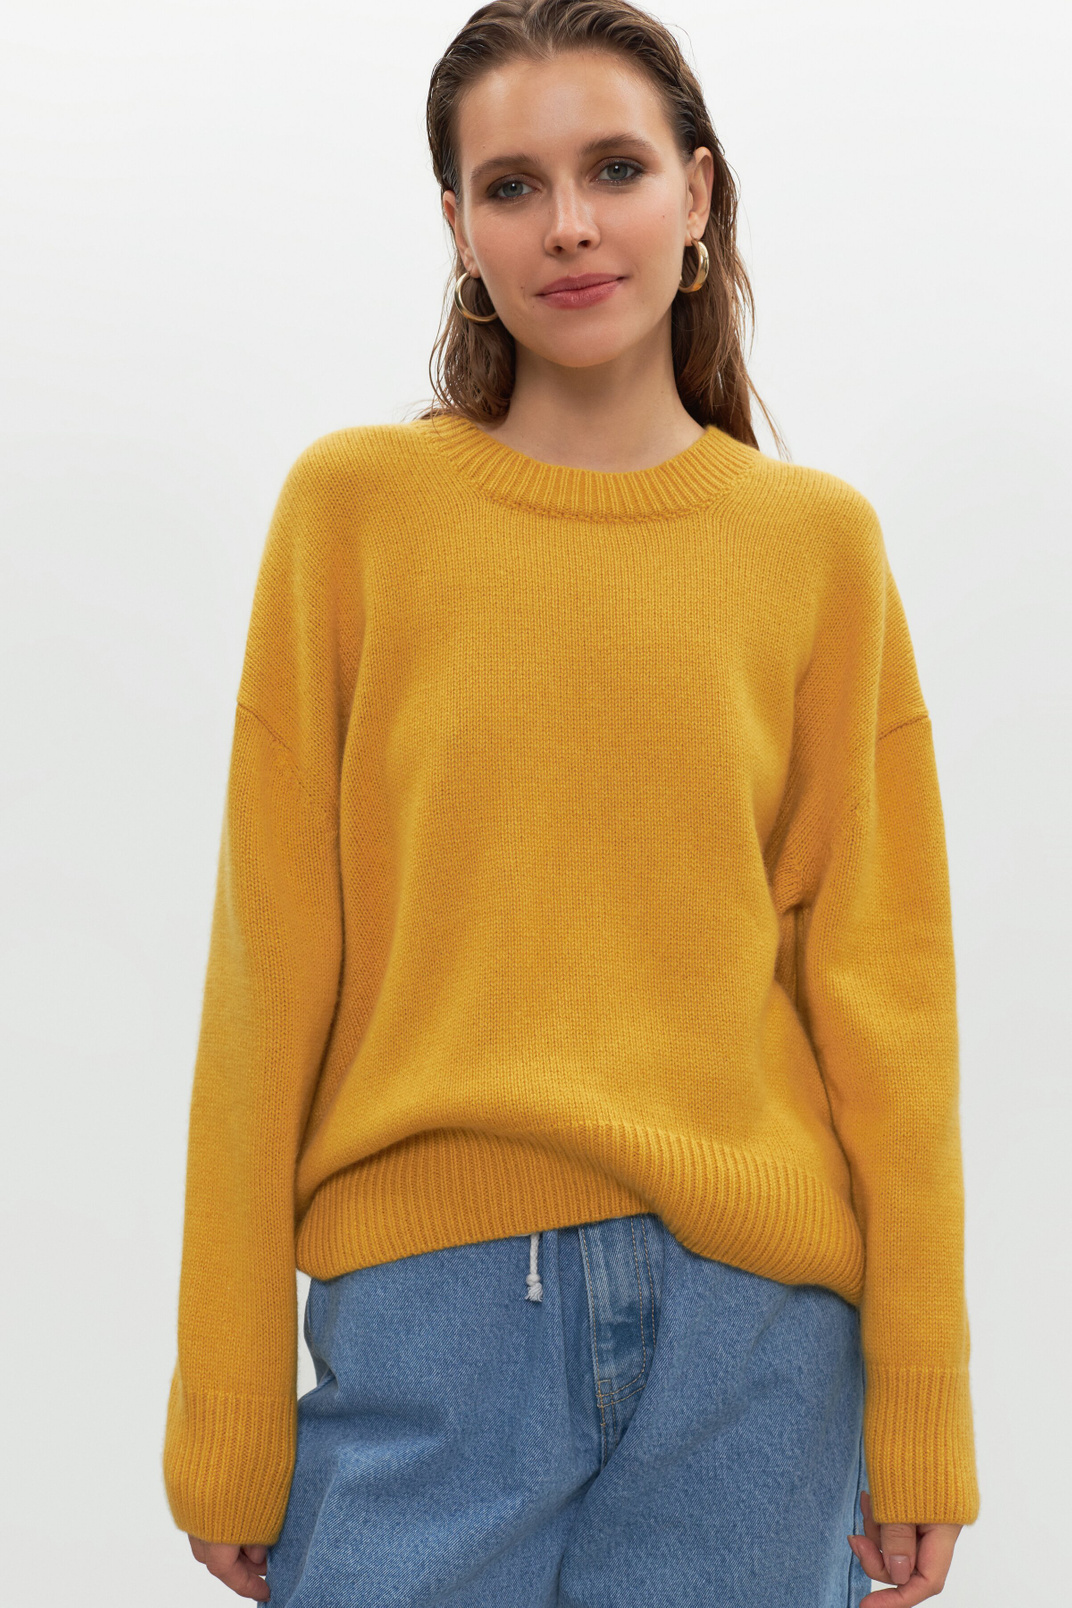 Oversize jumper 100% cashmere, Yellow, S